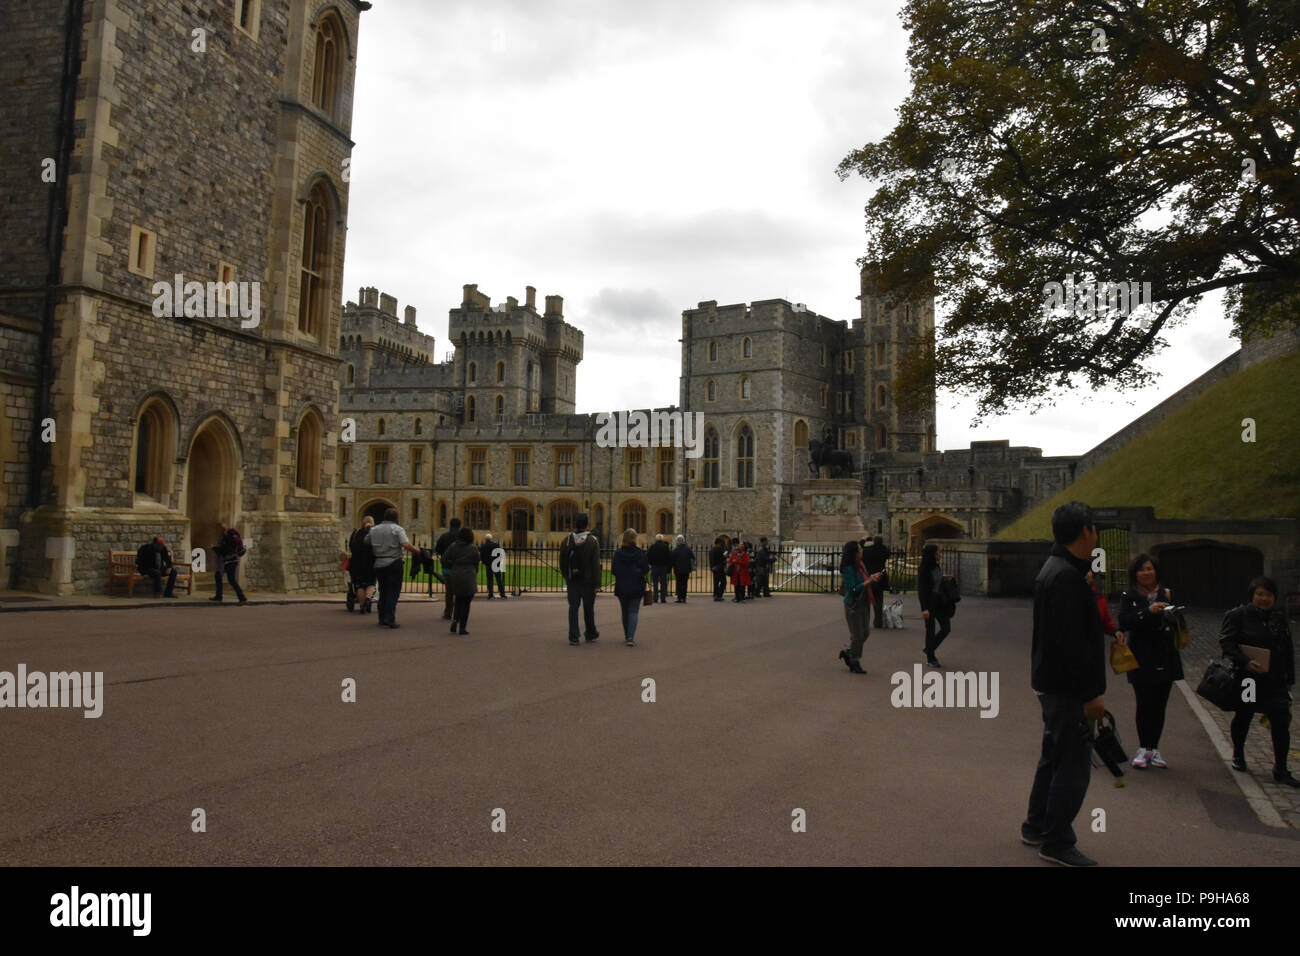 Tourists outside the State Apartments in the Middle Ward of Windsor Castle, Windsor, UK. - Stock Image